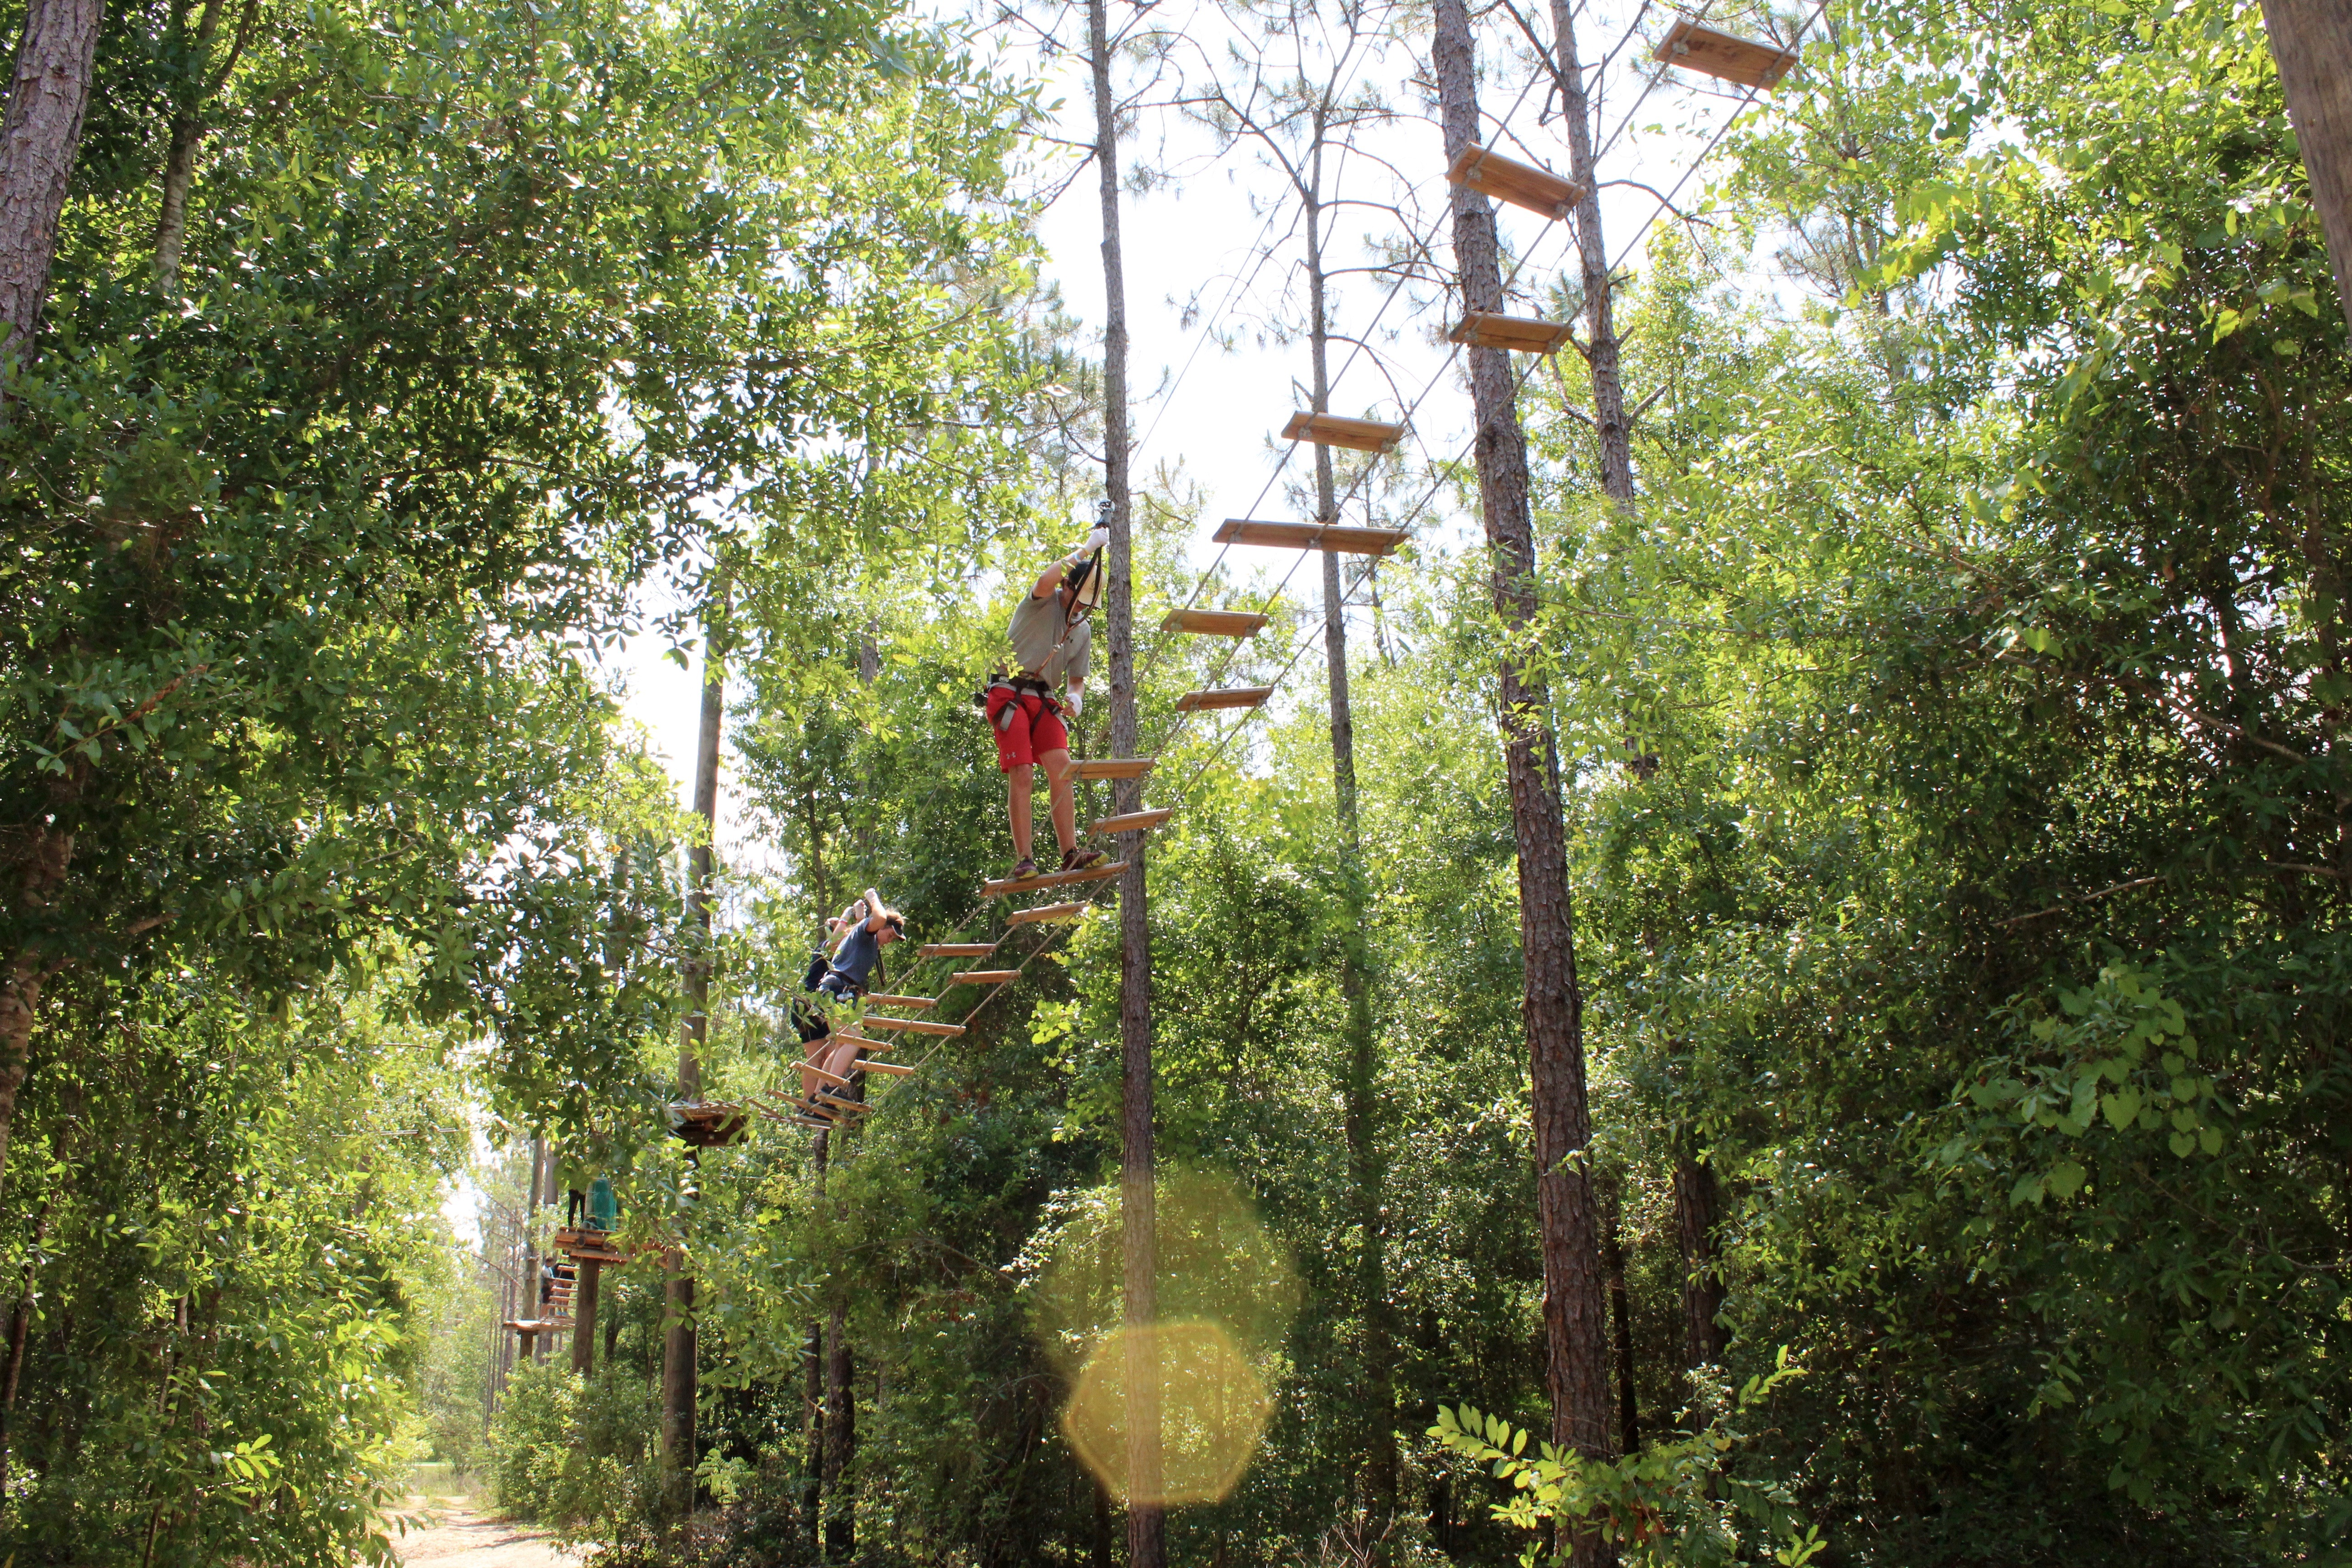 Guests climbing a ropes course on a sunny day